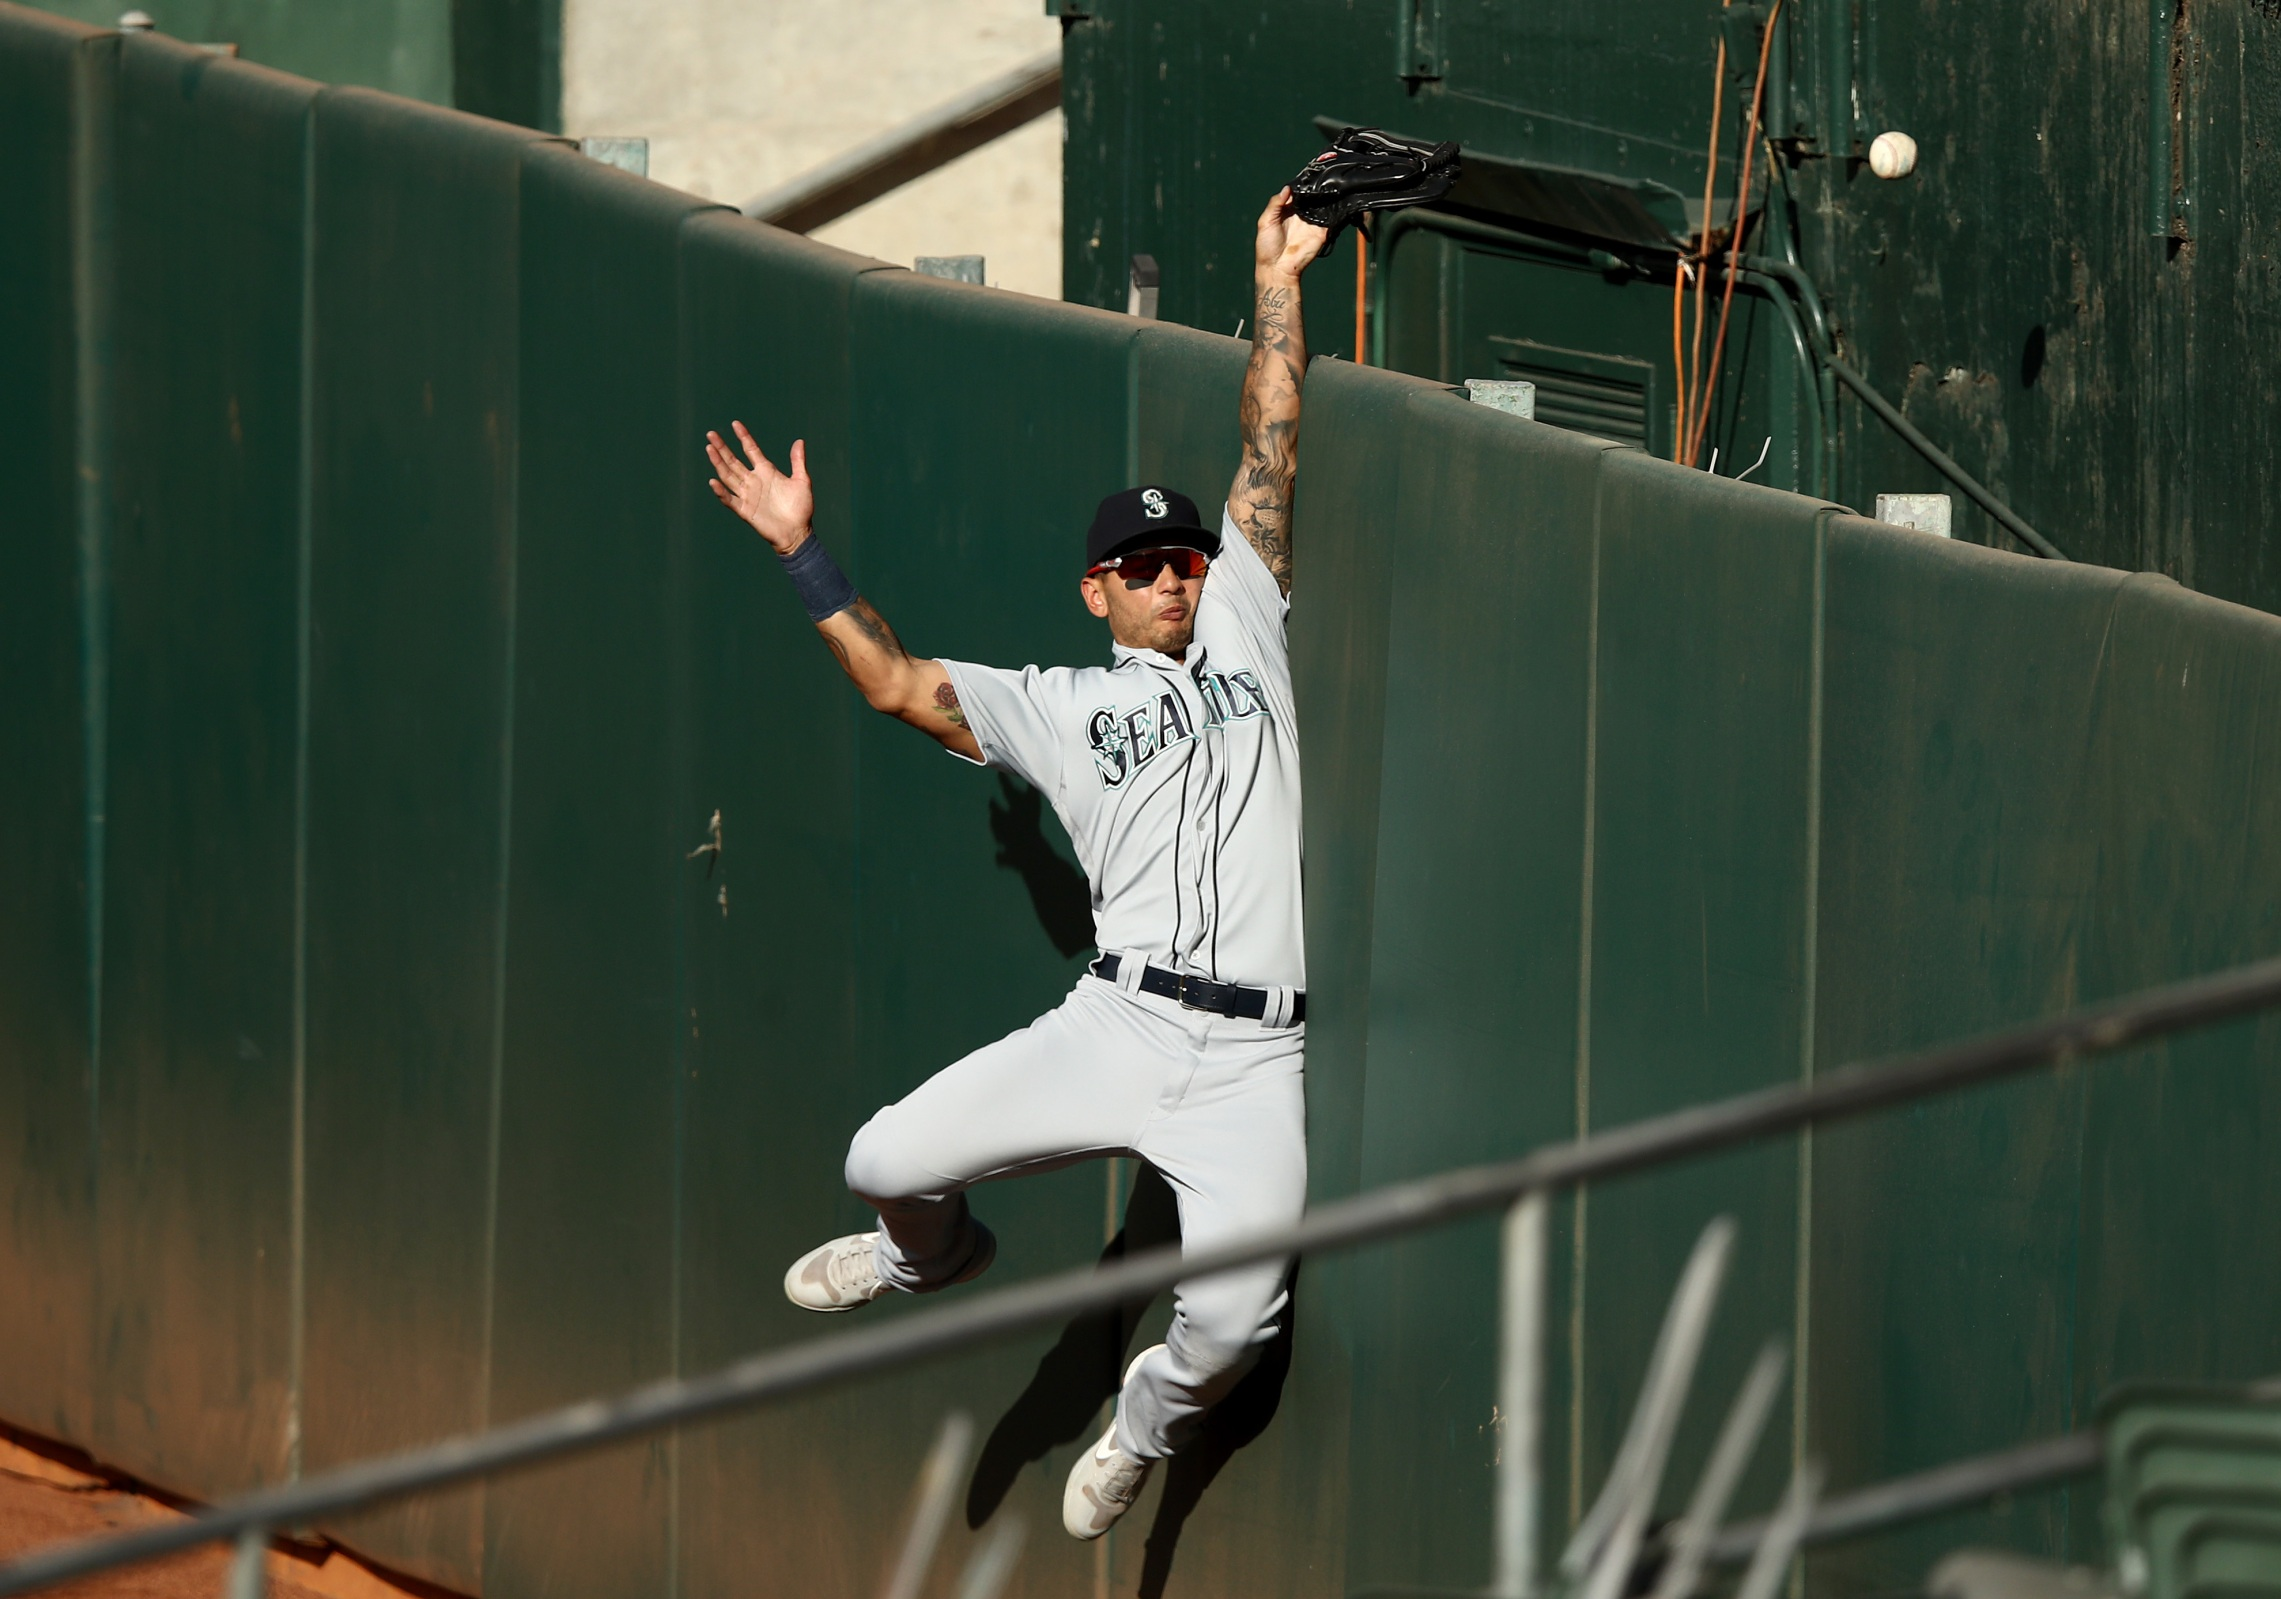 Mariners outfield Tim Lopes can't catch a homer, just as Kevin Mather couldn't quite grasp how to shut up.